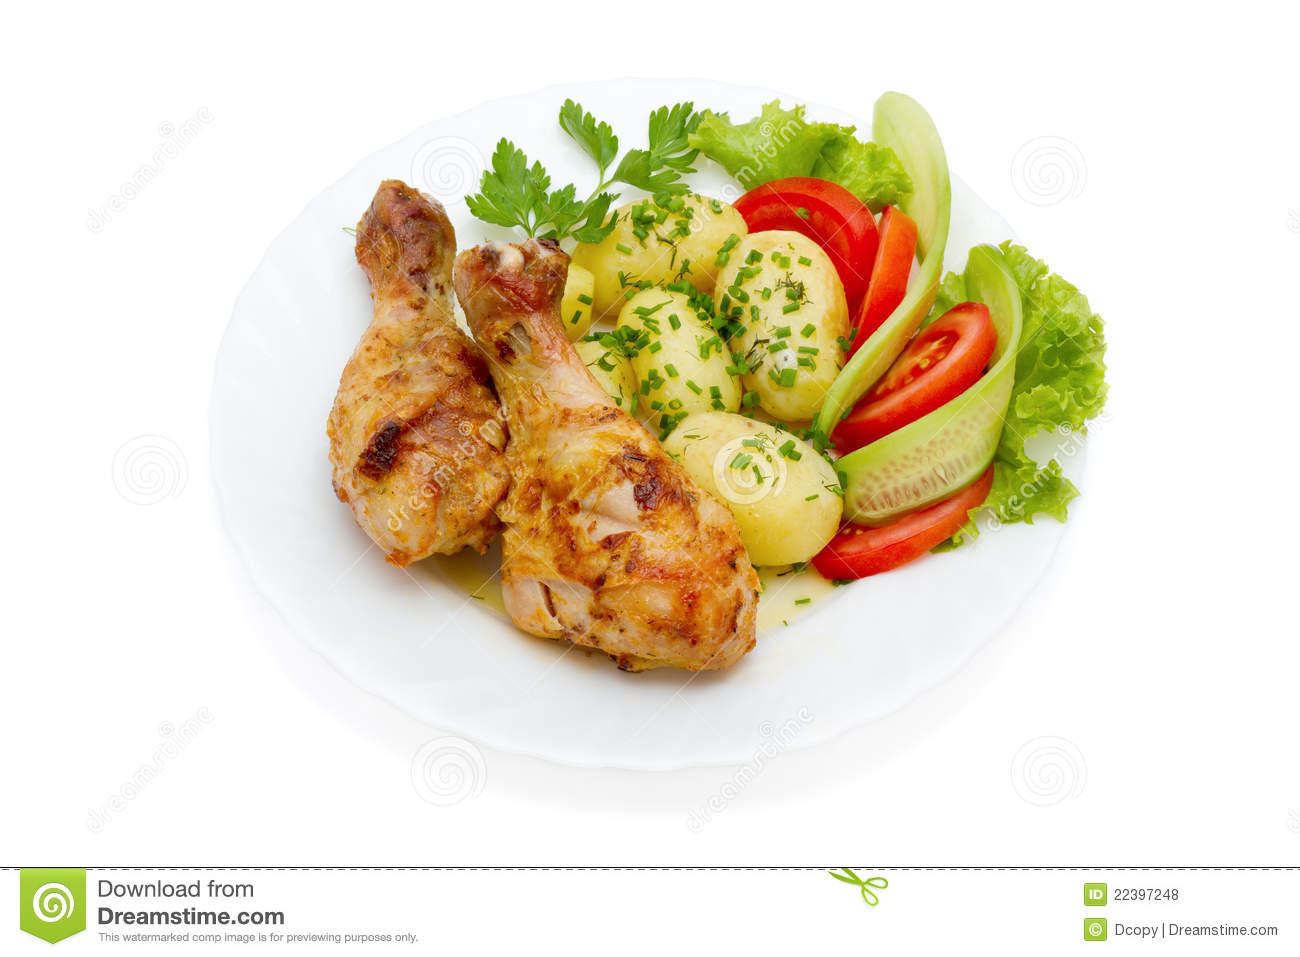 Royalty Free Stock Photos: Chicken legs, potatoes and vegetable salad